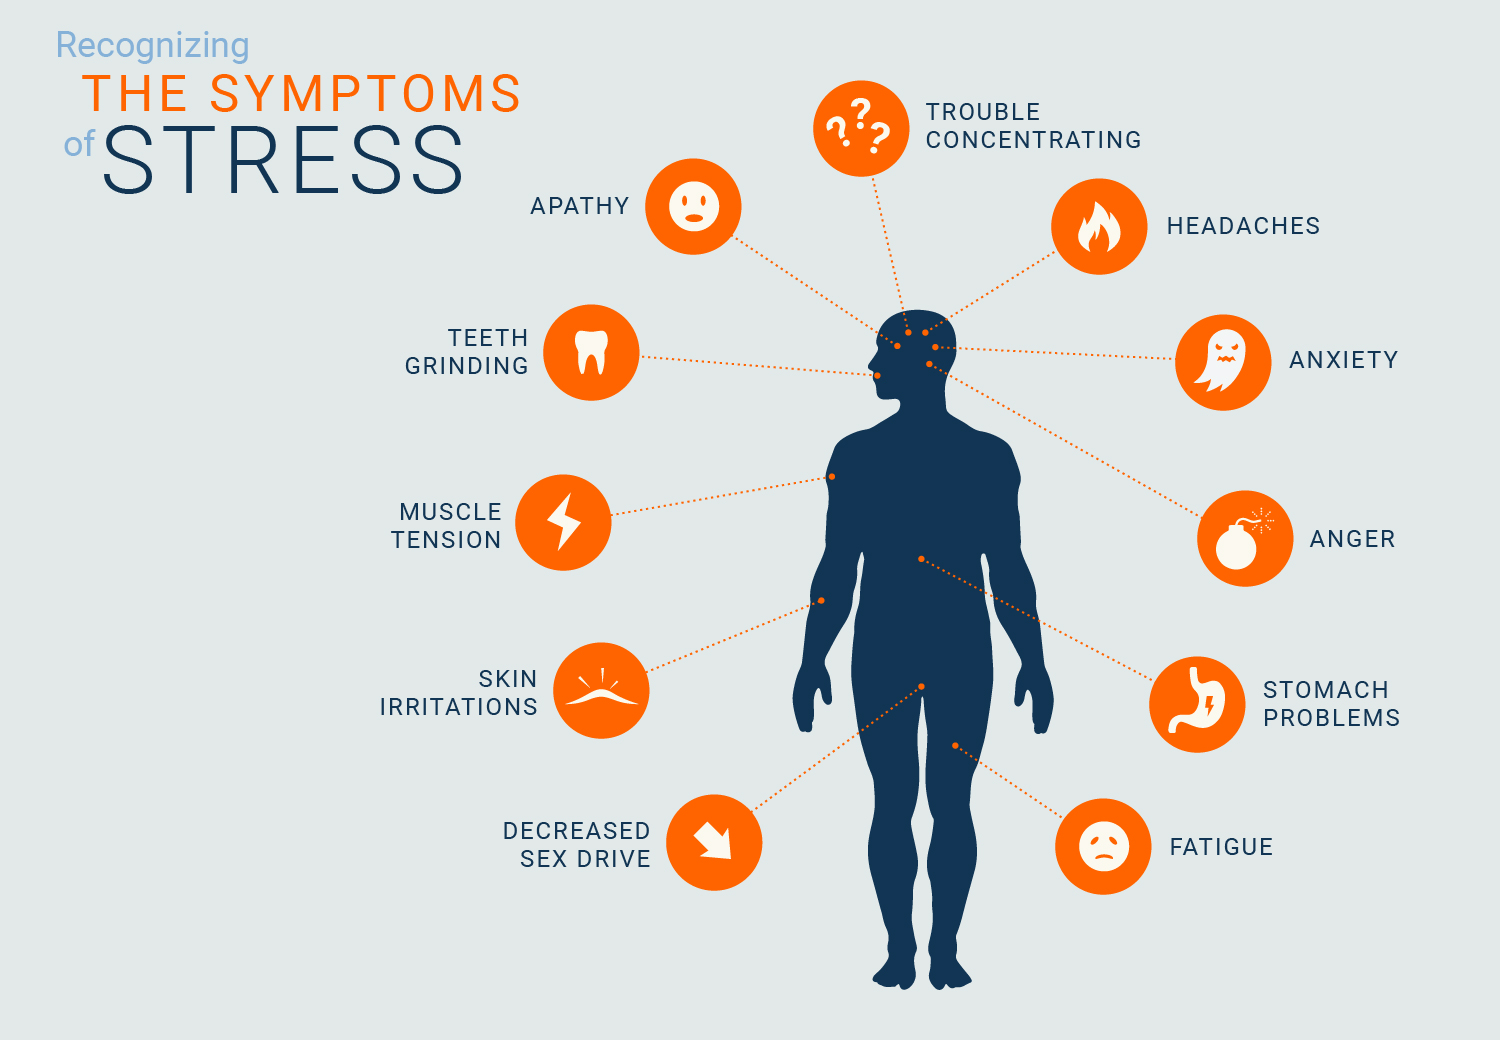 Dealing with Stress Symptoms